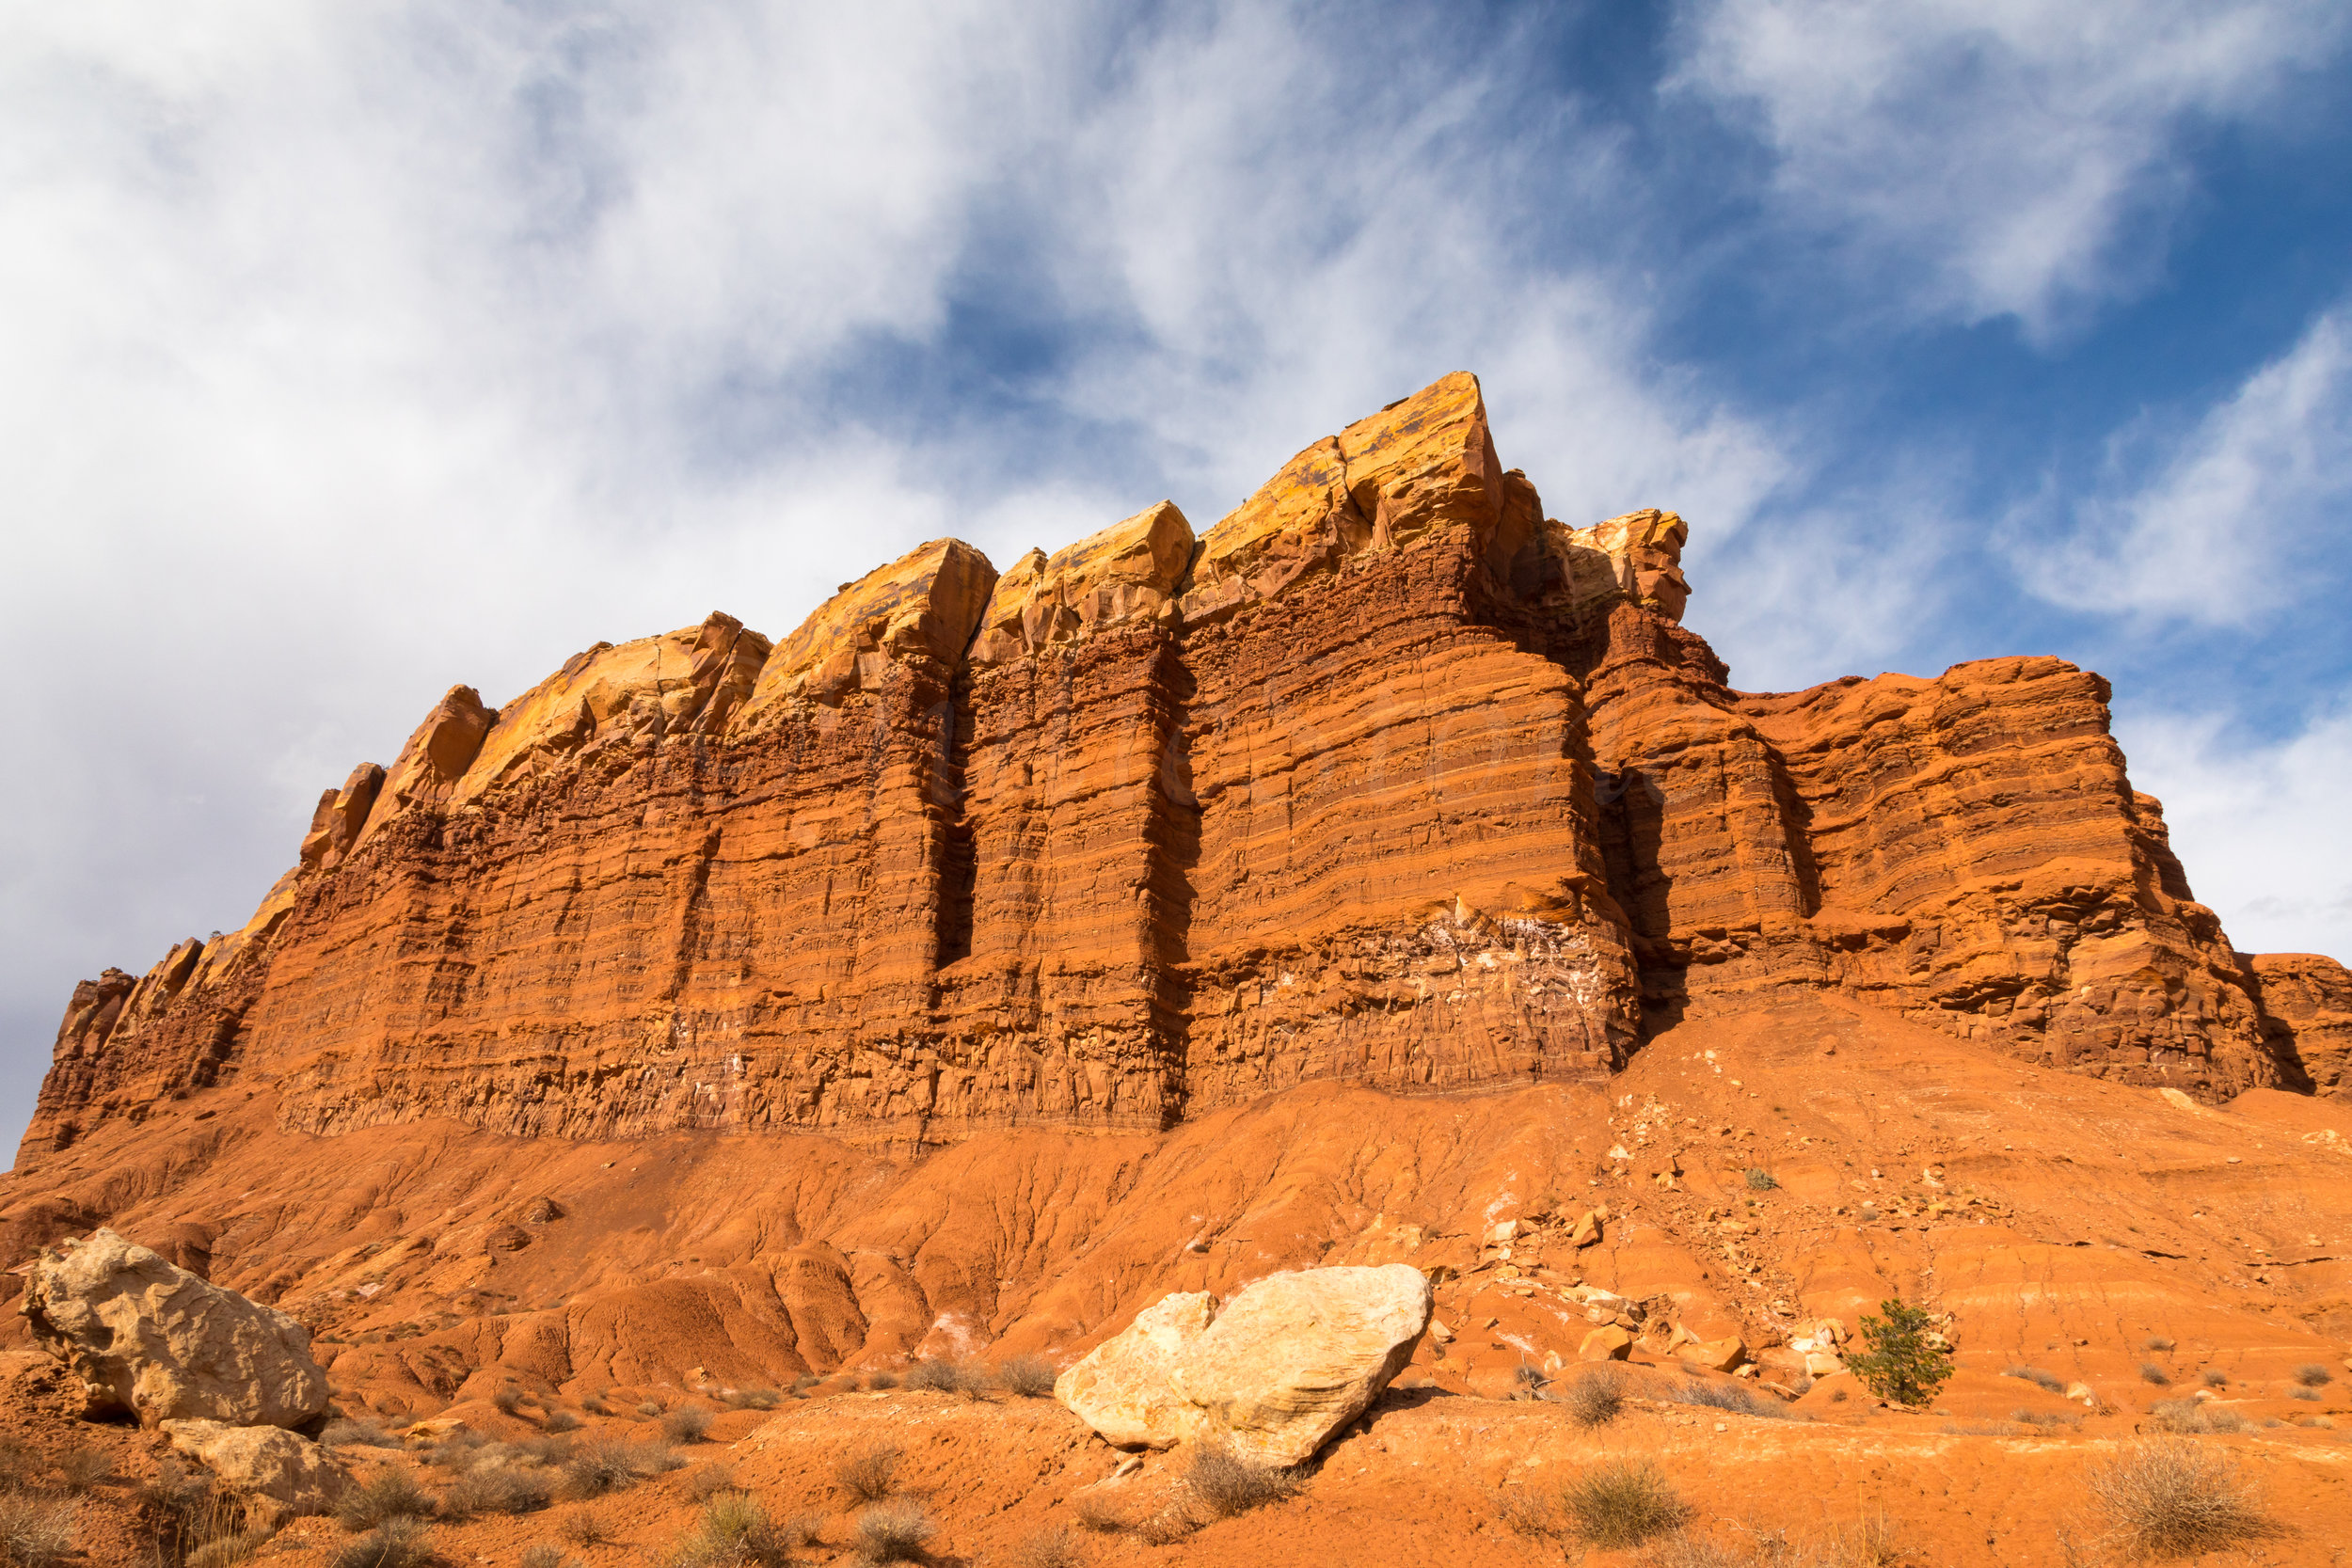 Capitol Reef National Park, Image # 0422